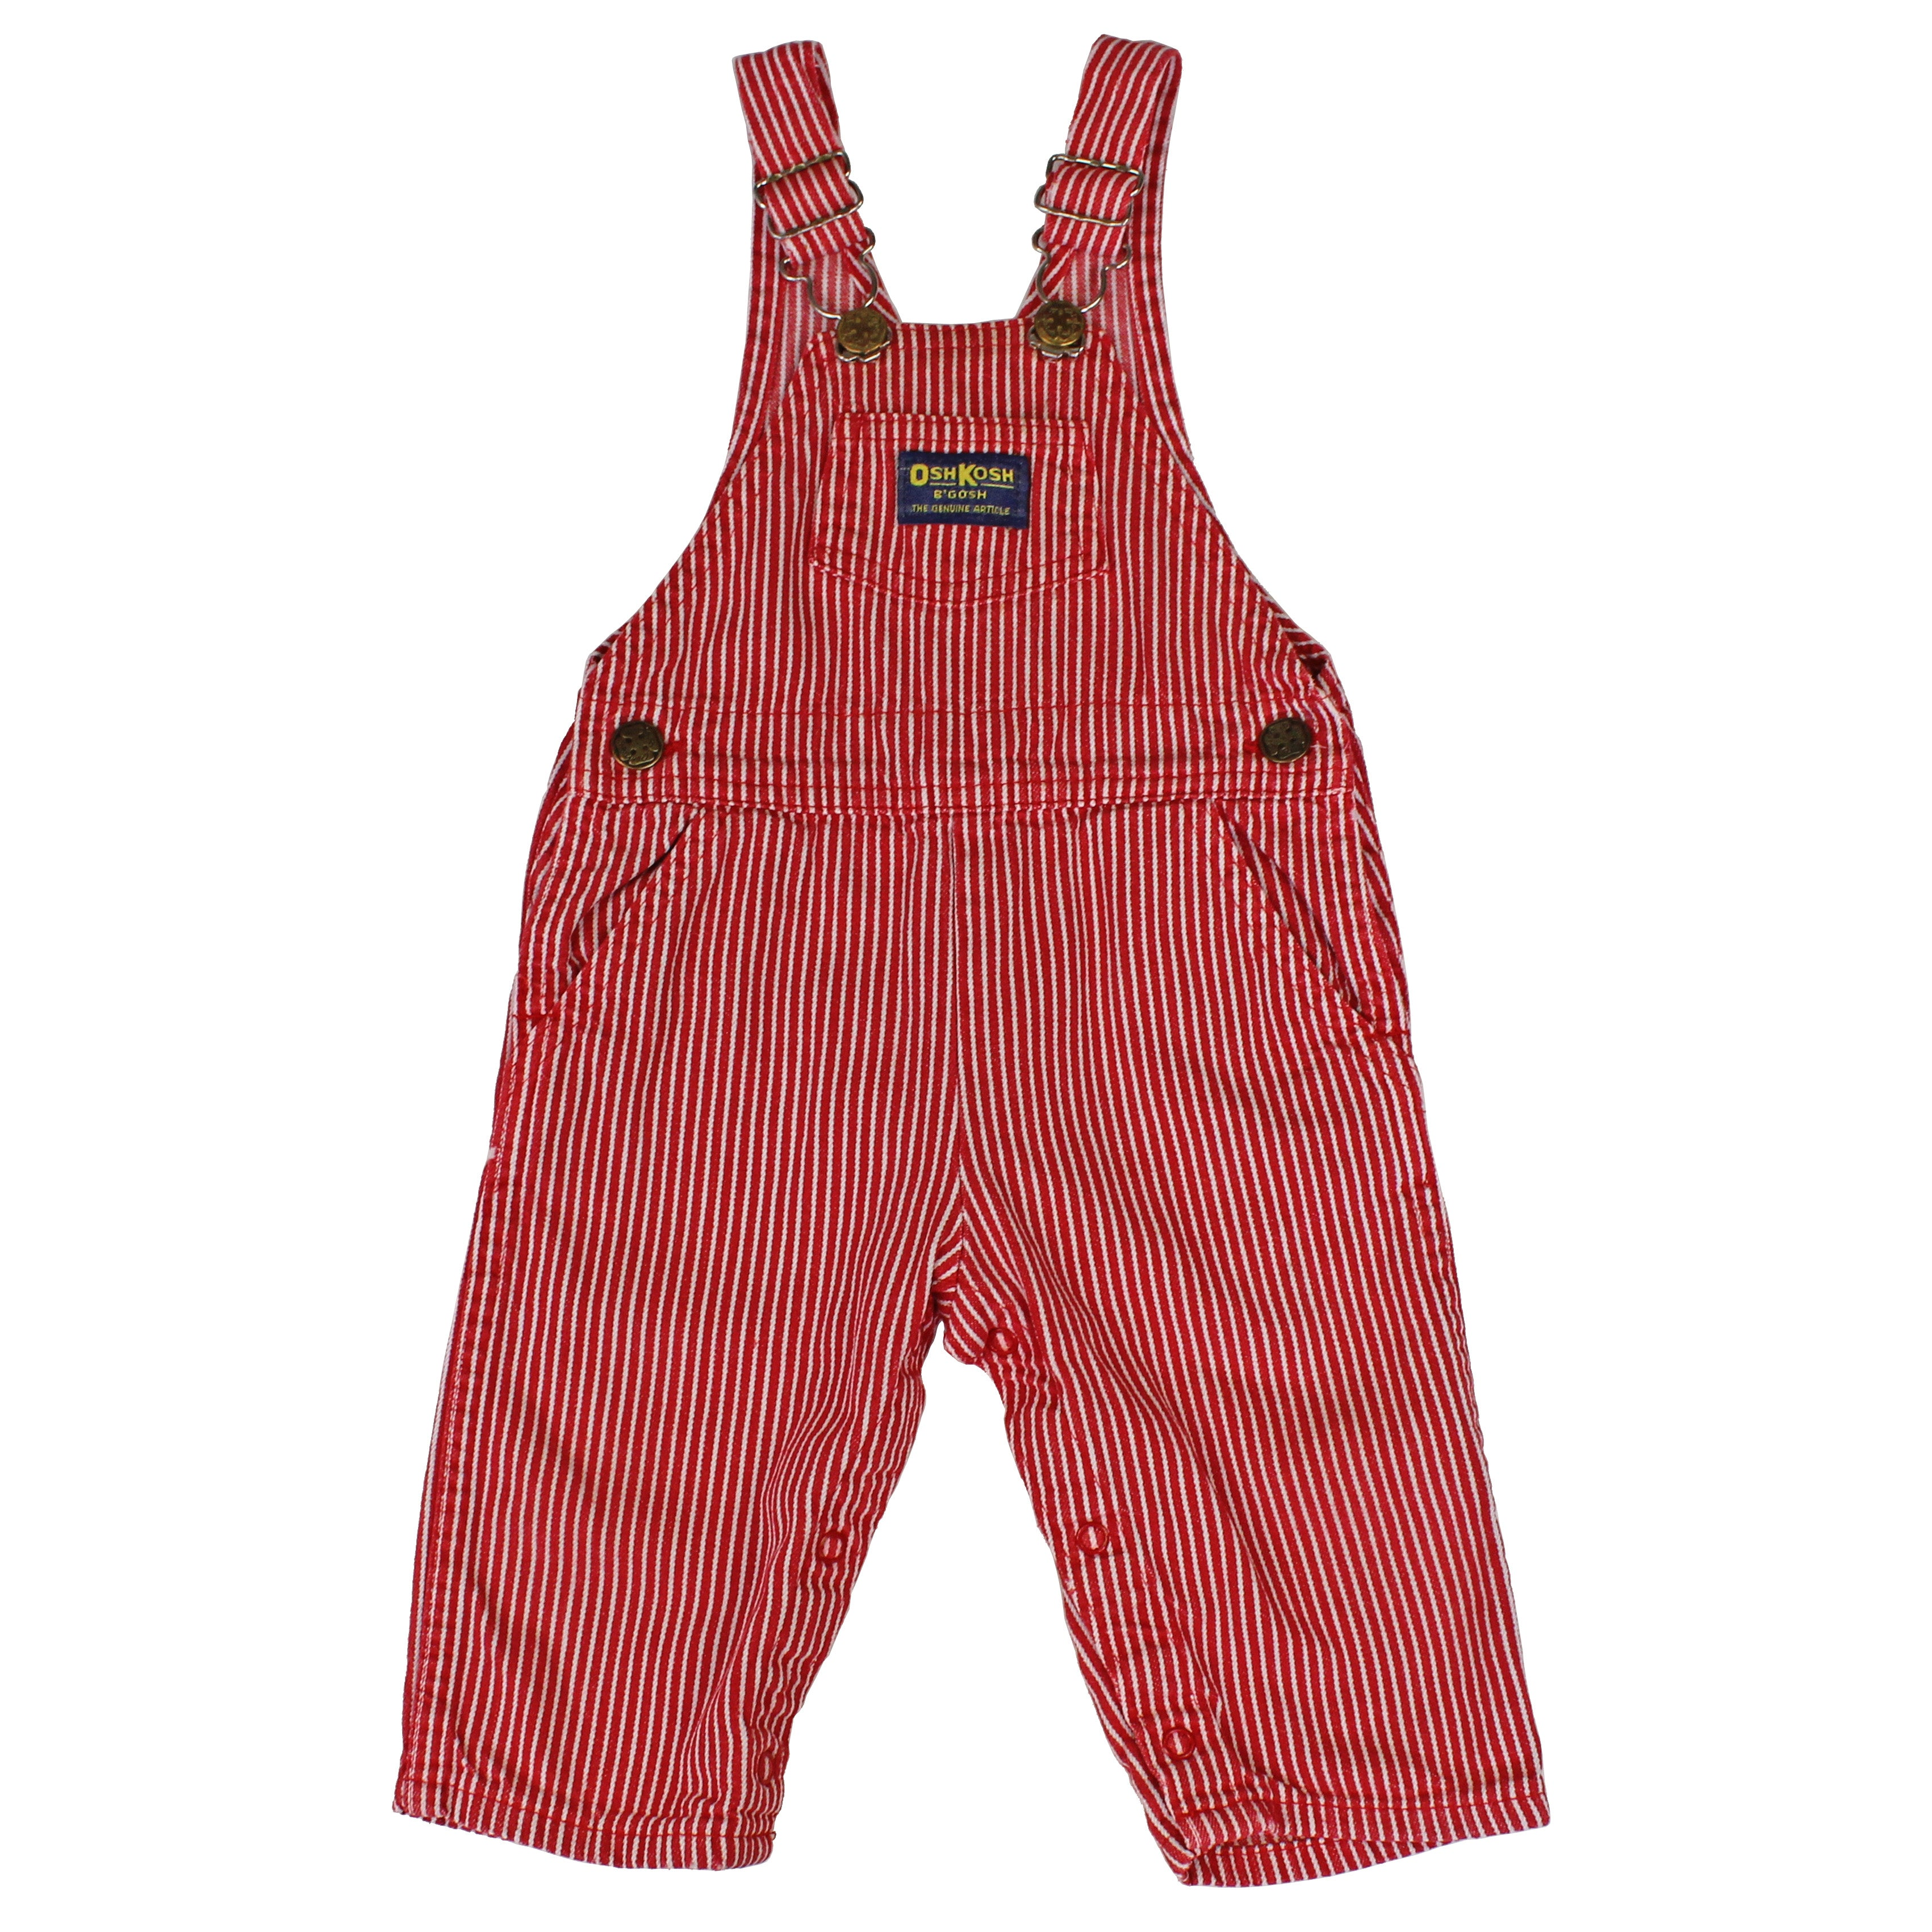 Vintage OshKosh Red and White Engineer Stripe Overalls